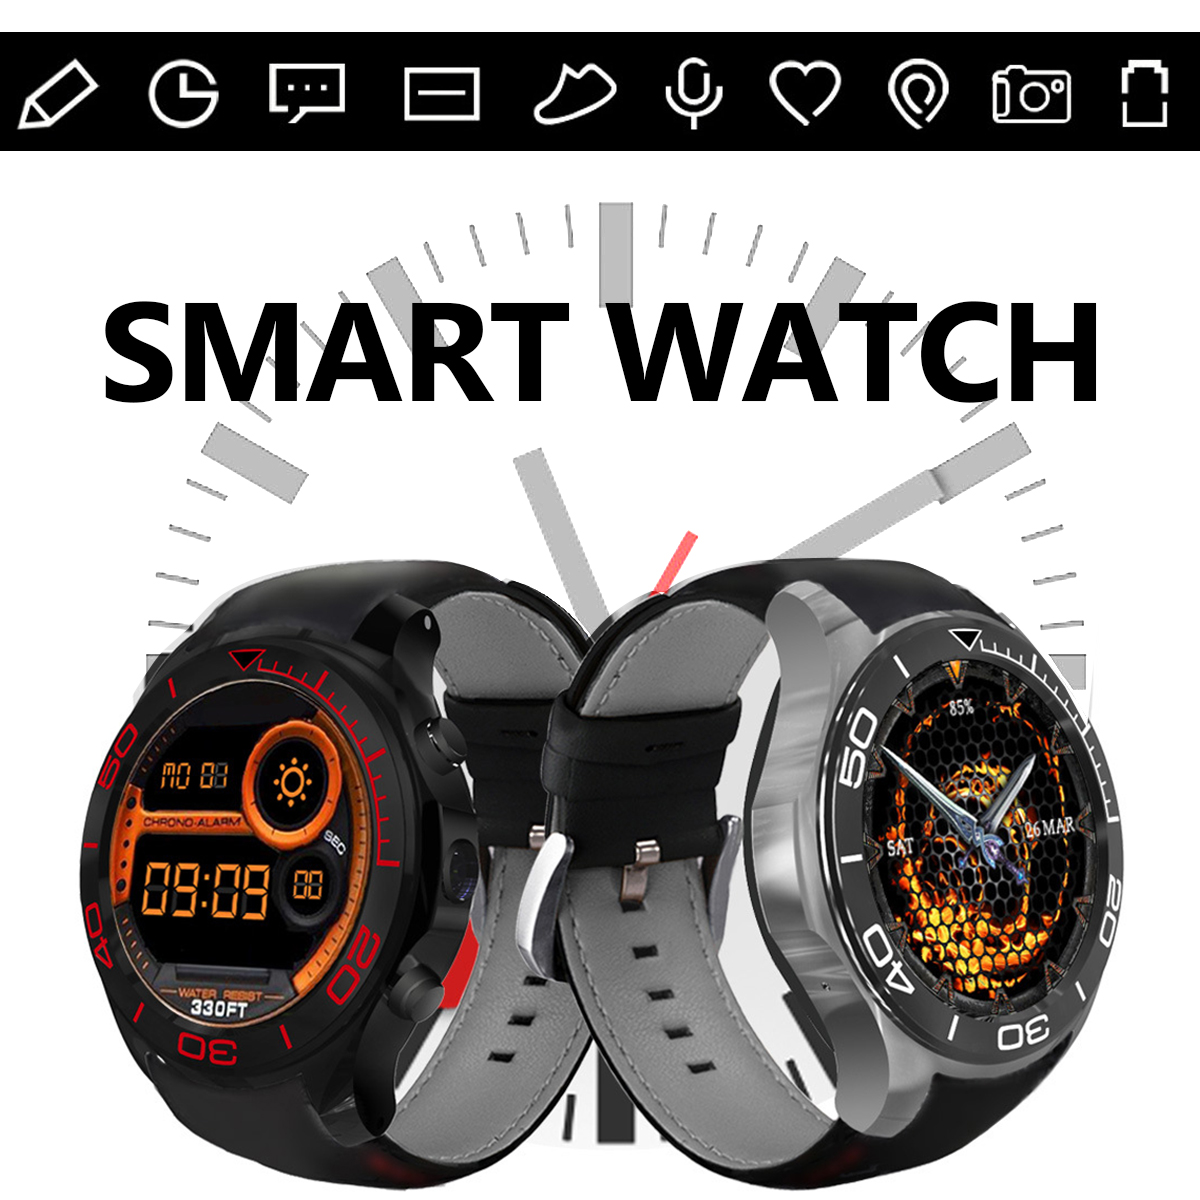 Android 5.1 WIFI bluetooth SIM GPS Camera Heart Rate SOS Pedometer Smart Watch